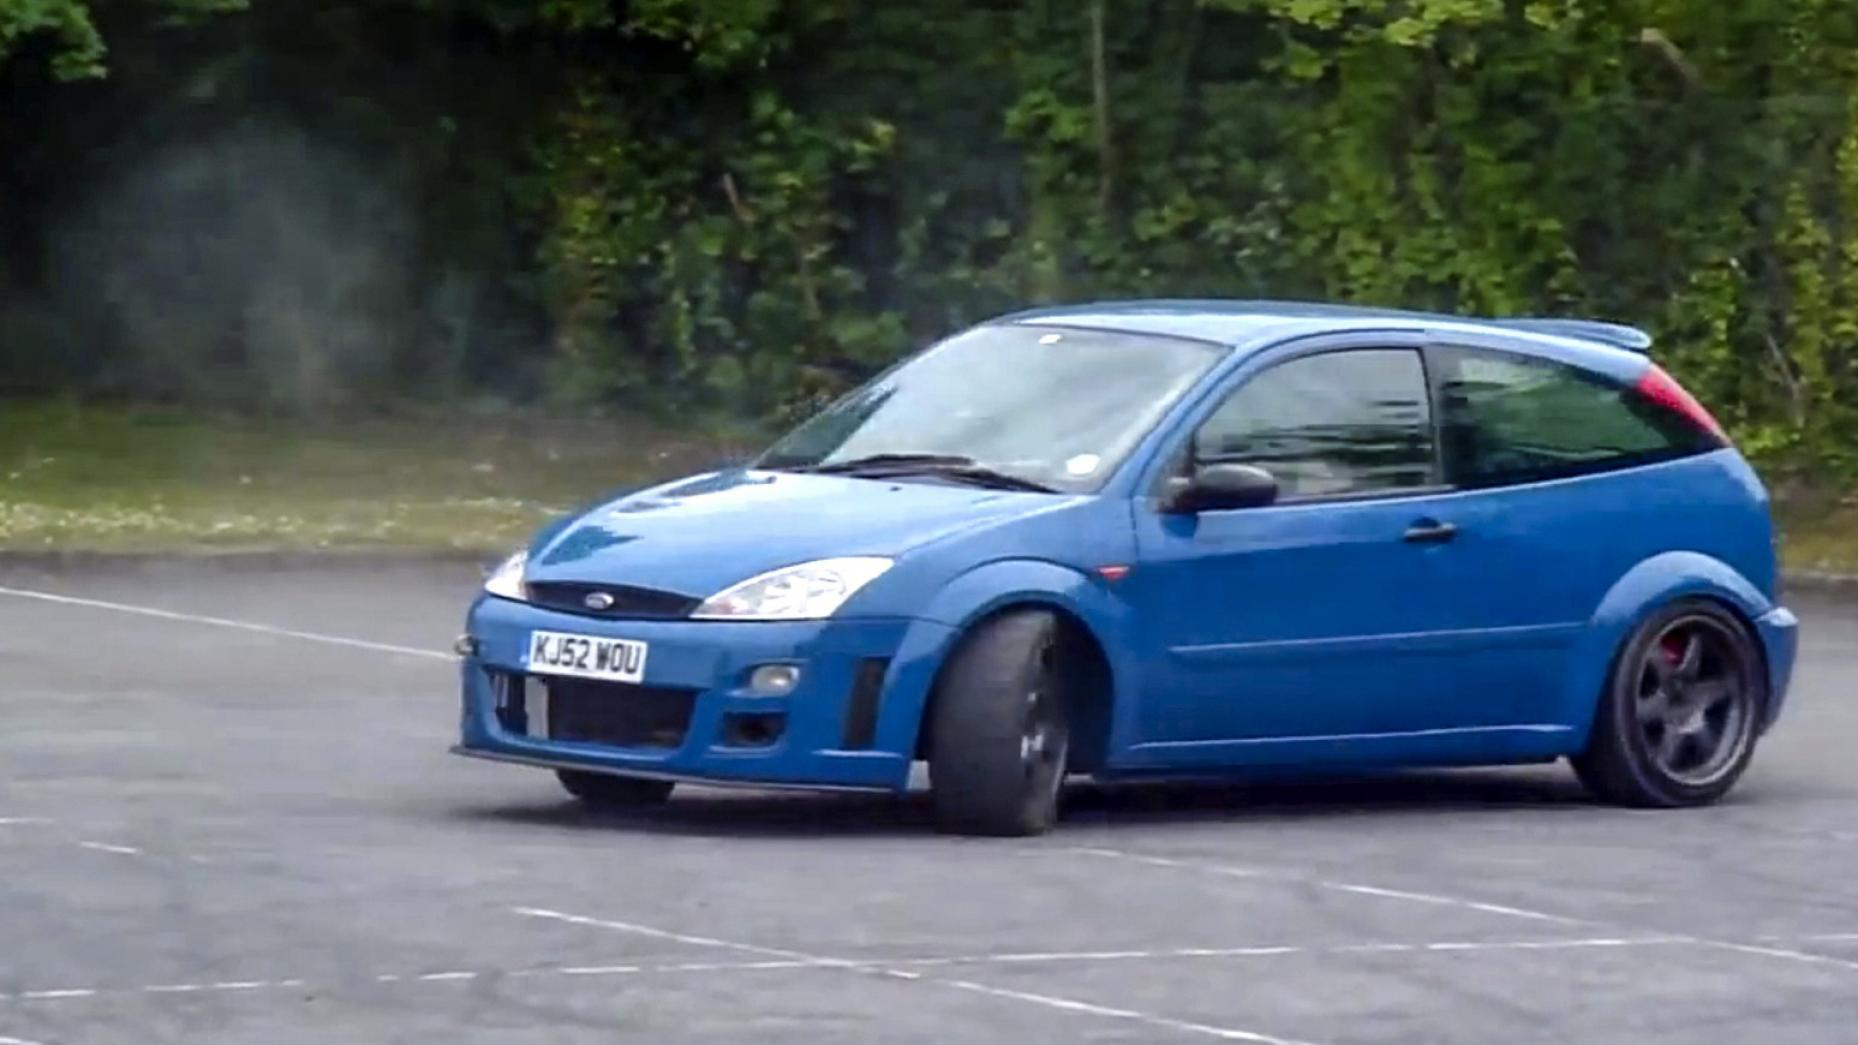 Watch a ford focus v8 rwd conversion drift its way into your heart video 89260 1 0